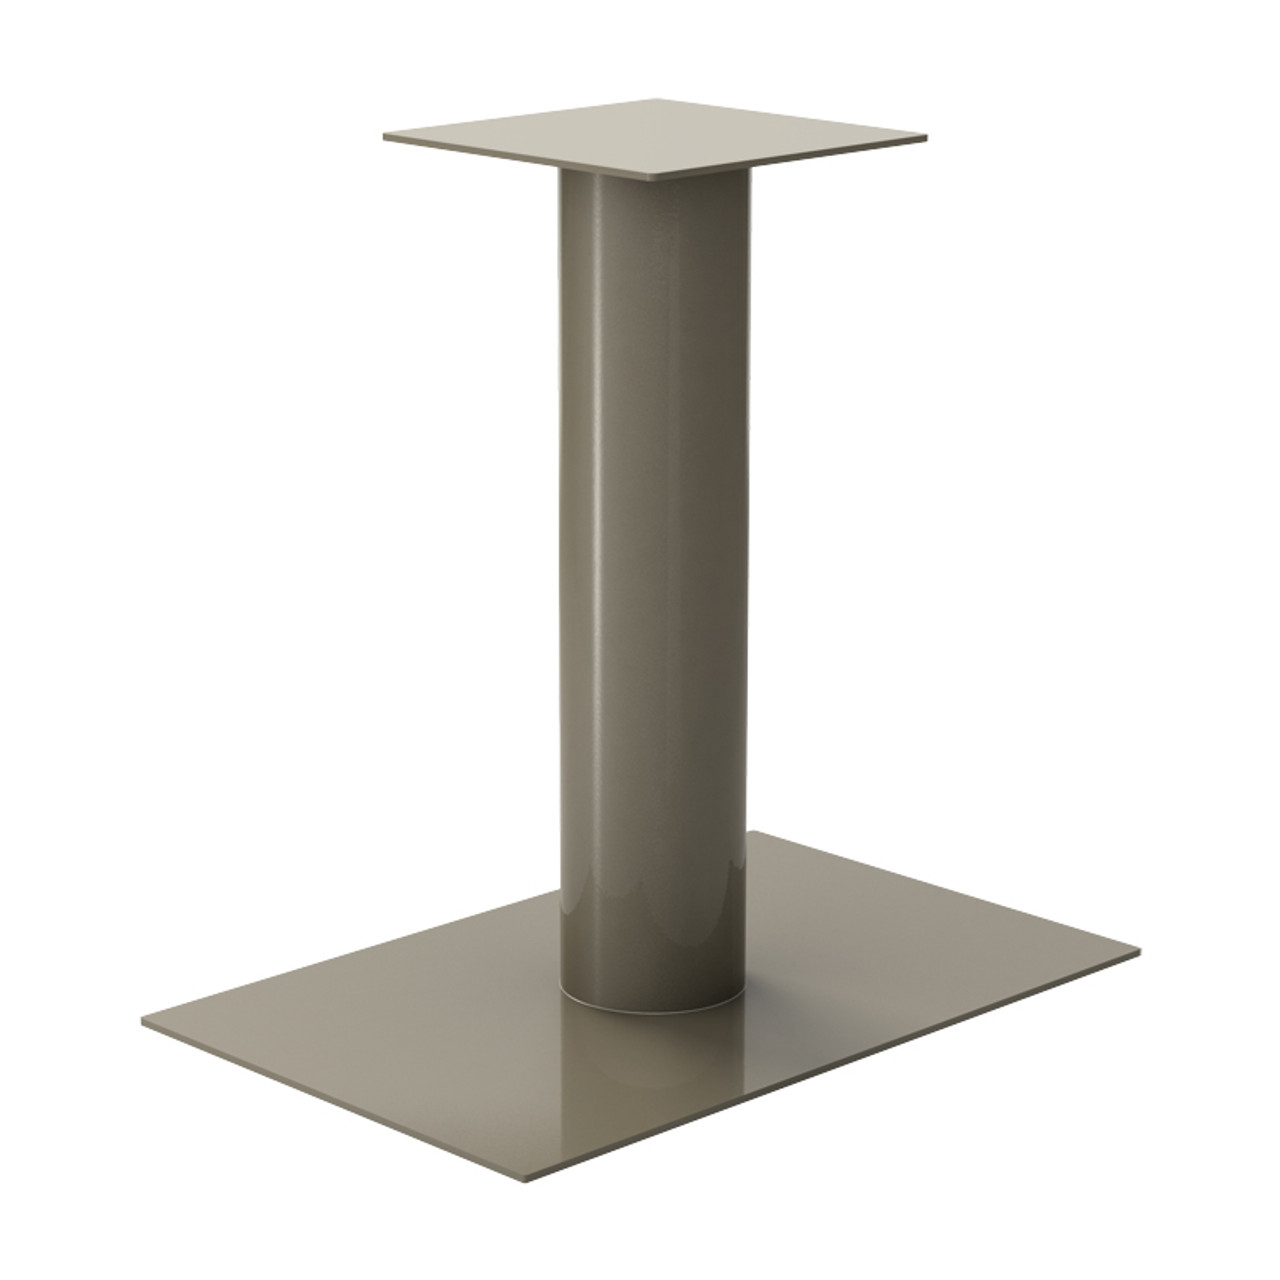 "Rectangle Pedestal Base, 27-3/4"" Height, 24""x28"" Base, 6"" diameter Column, with welded mounting plate - Replacementtablelegs.com"